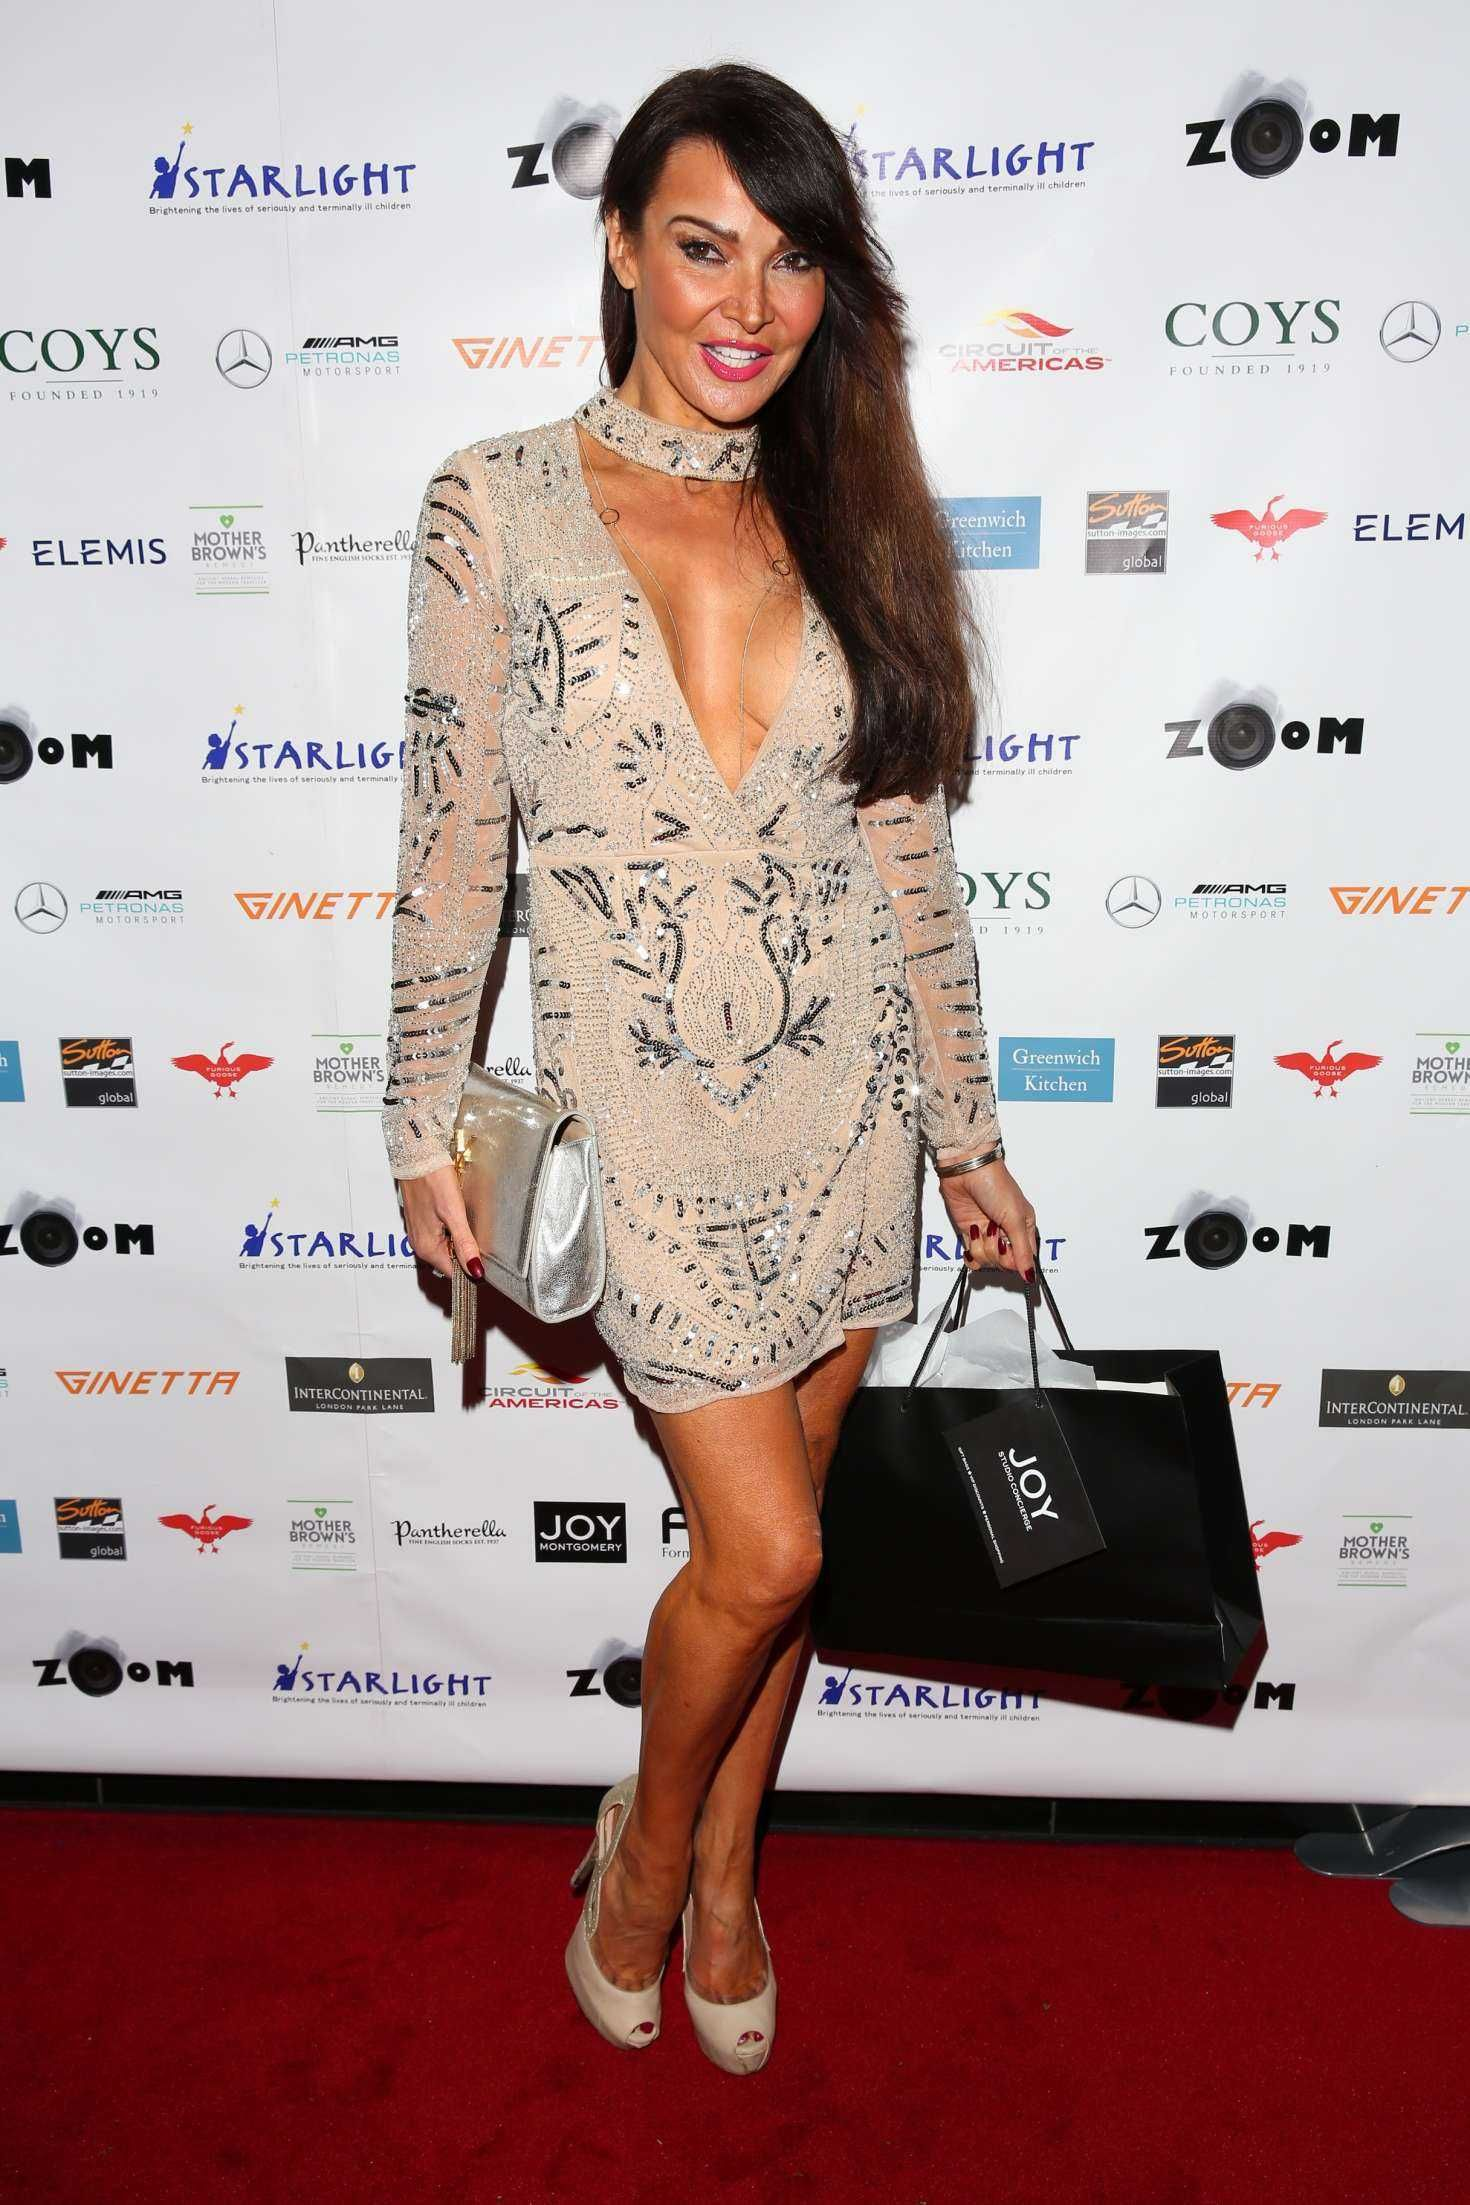 Lizzie cundy at zoom auction charity gala in london new picture